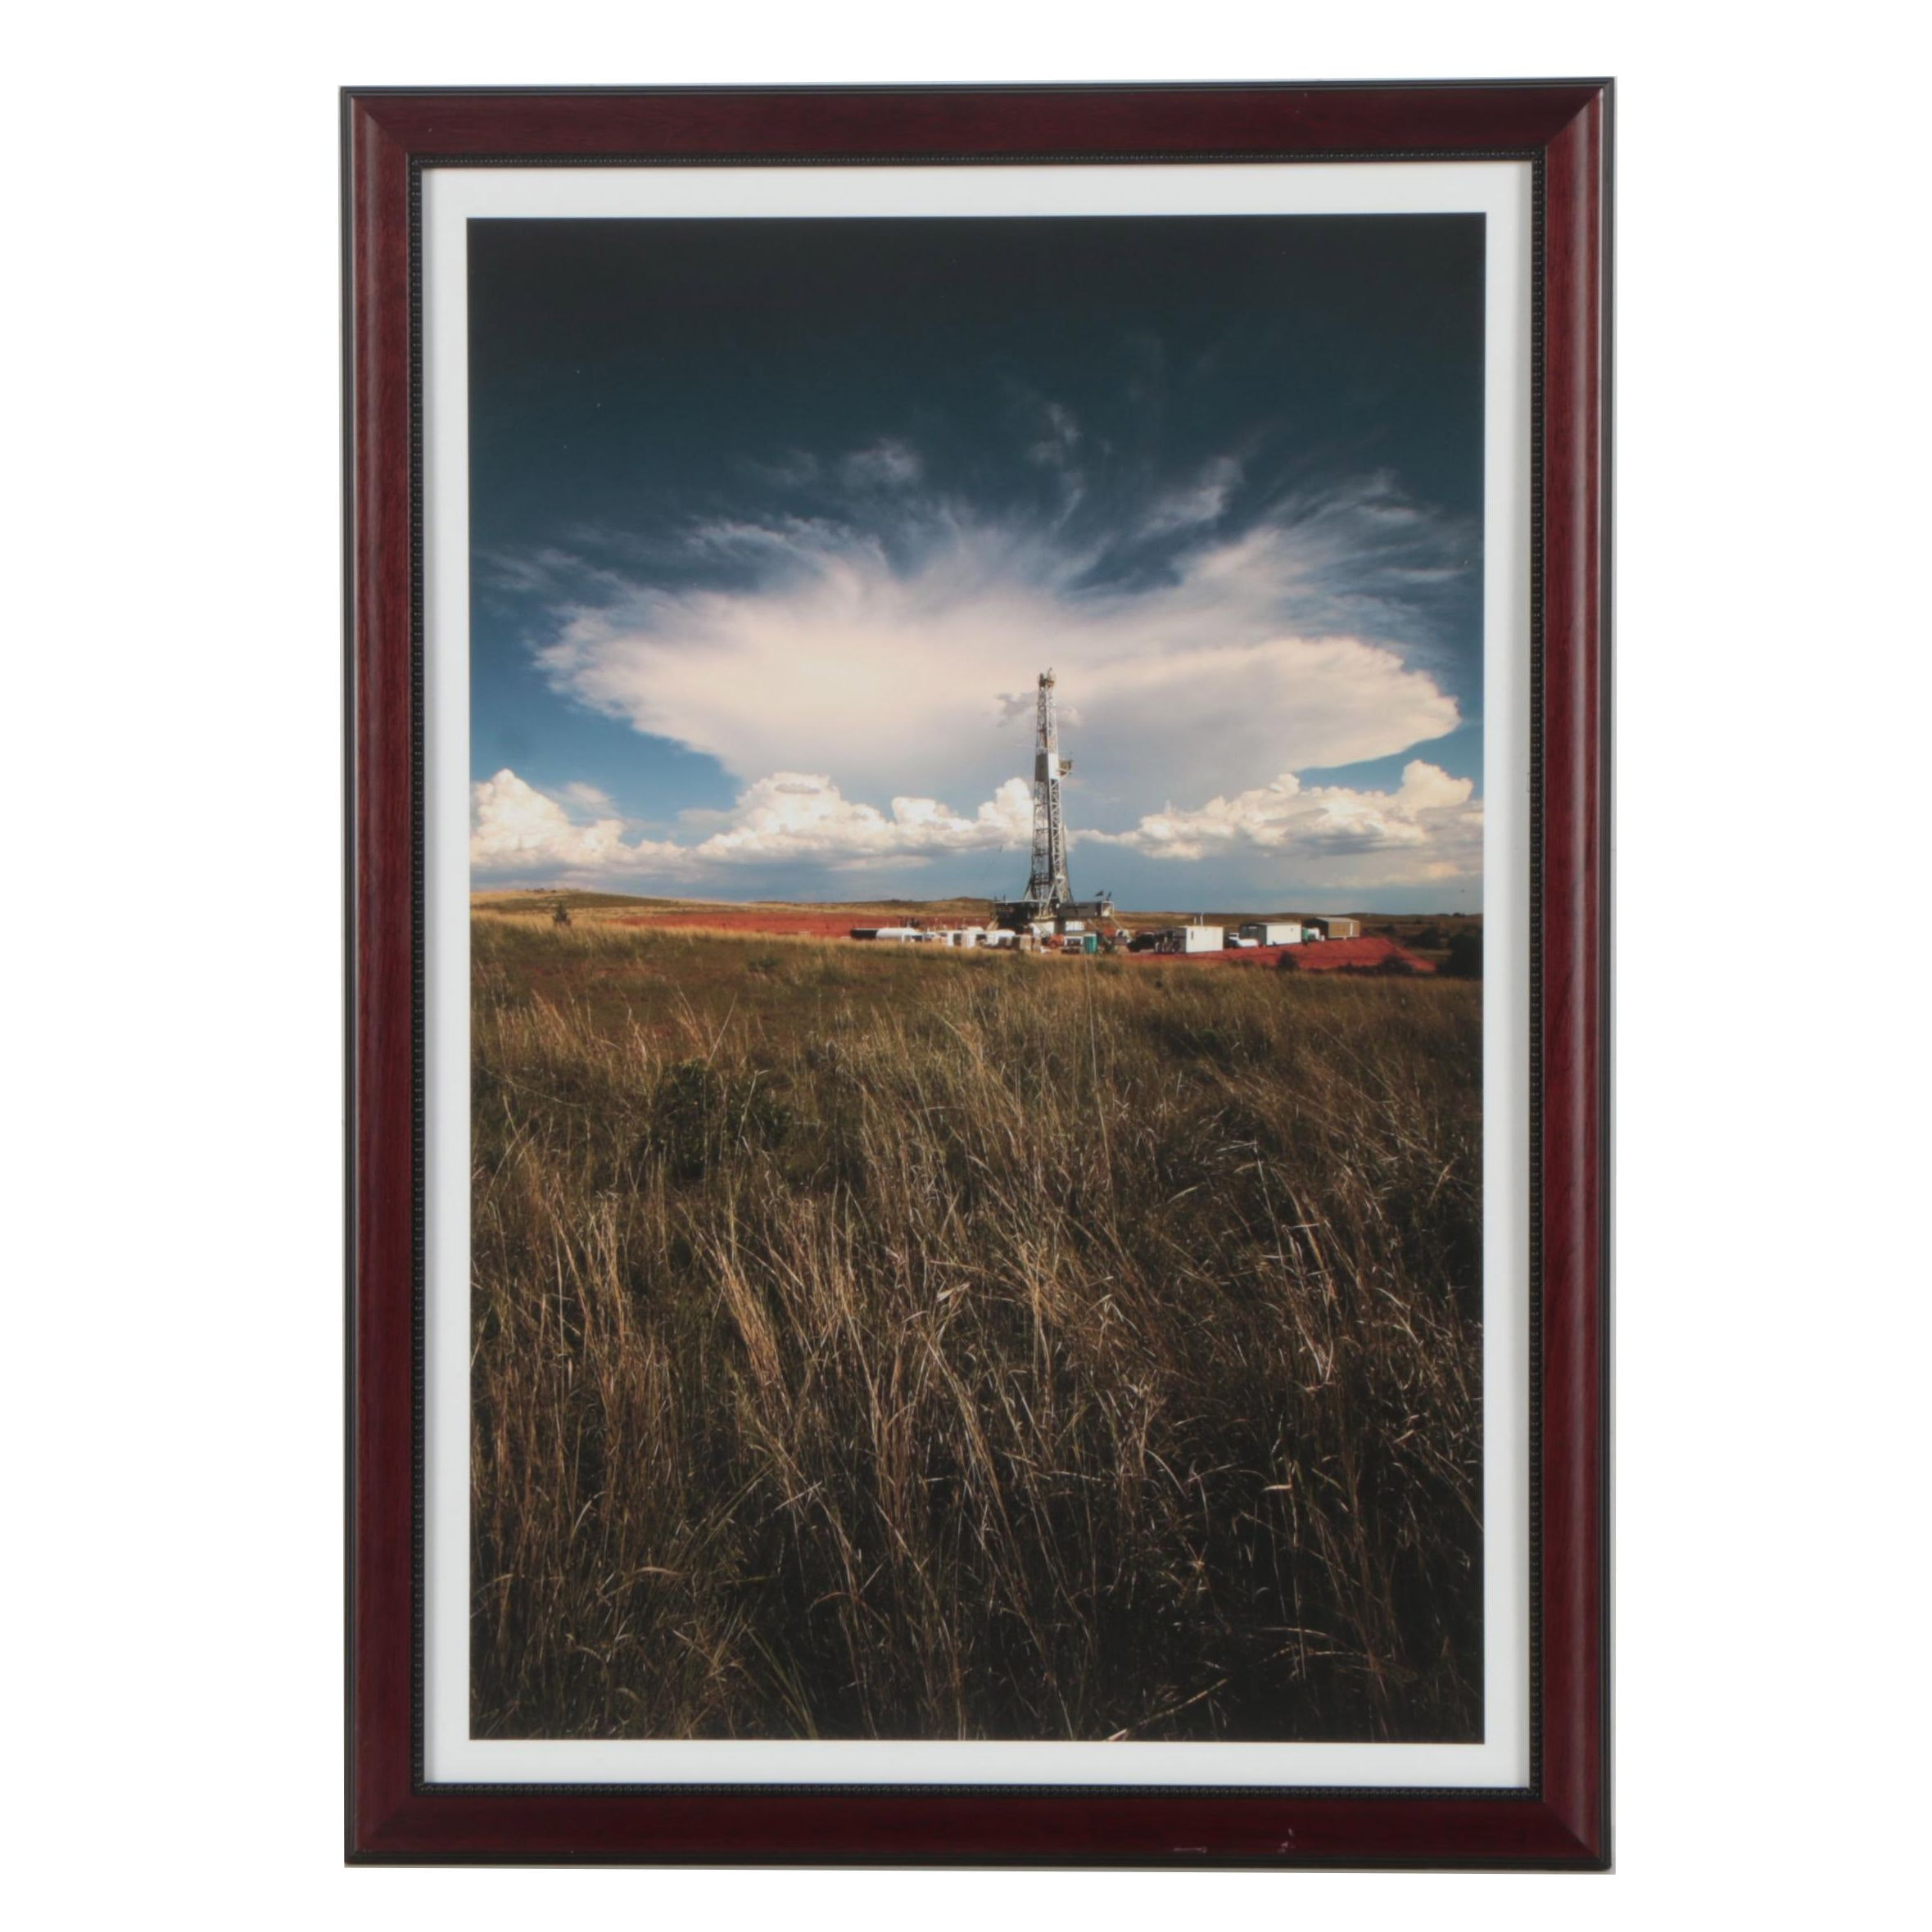 "Jeff Heger Digital Photograph ""Rig in Field of Tall Grass"""